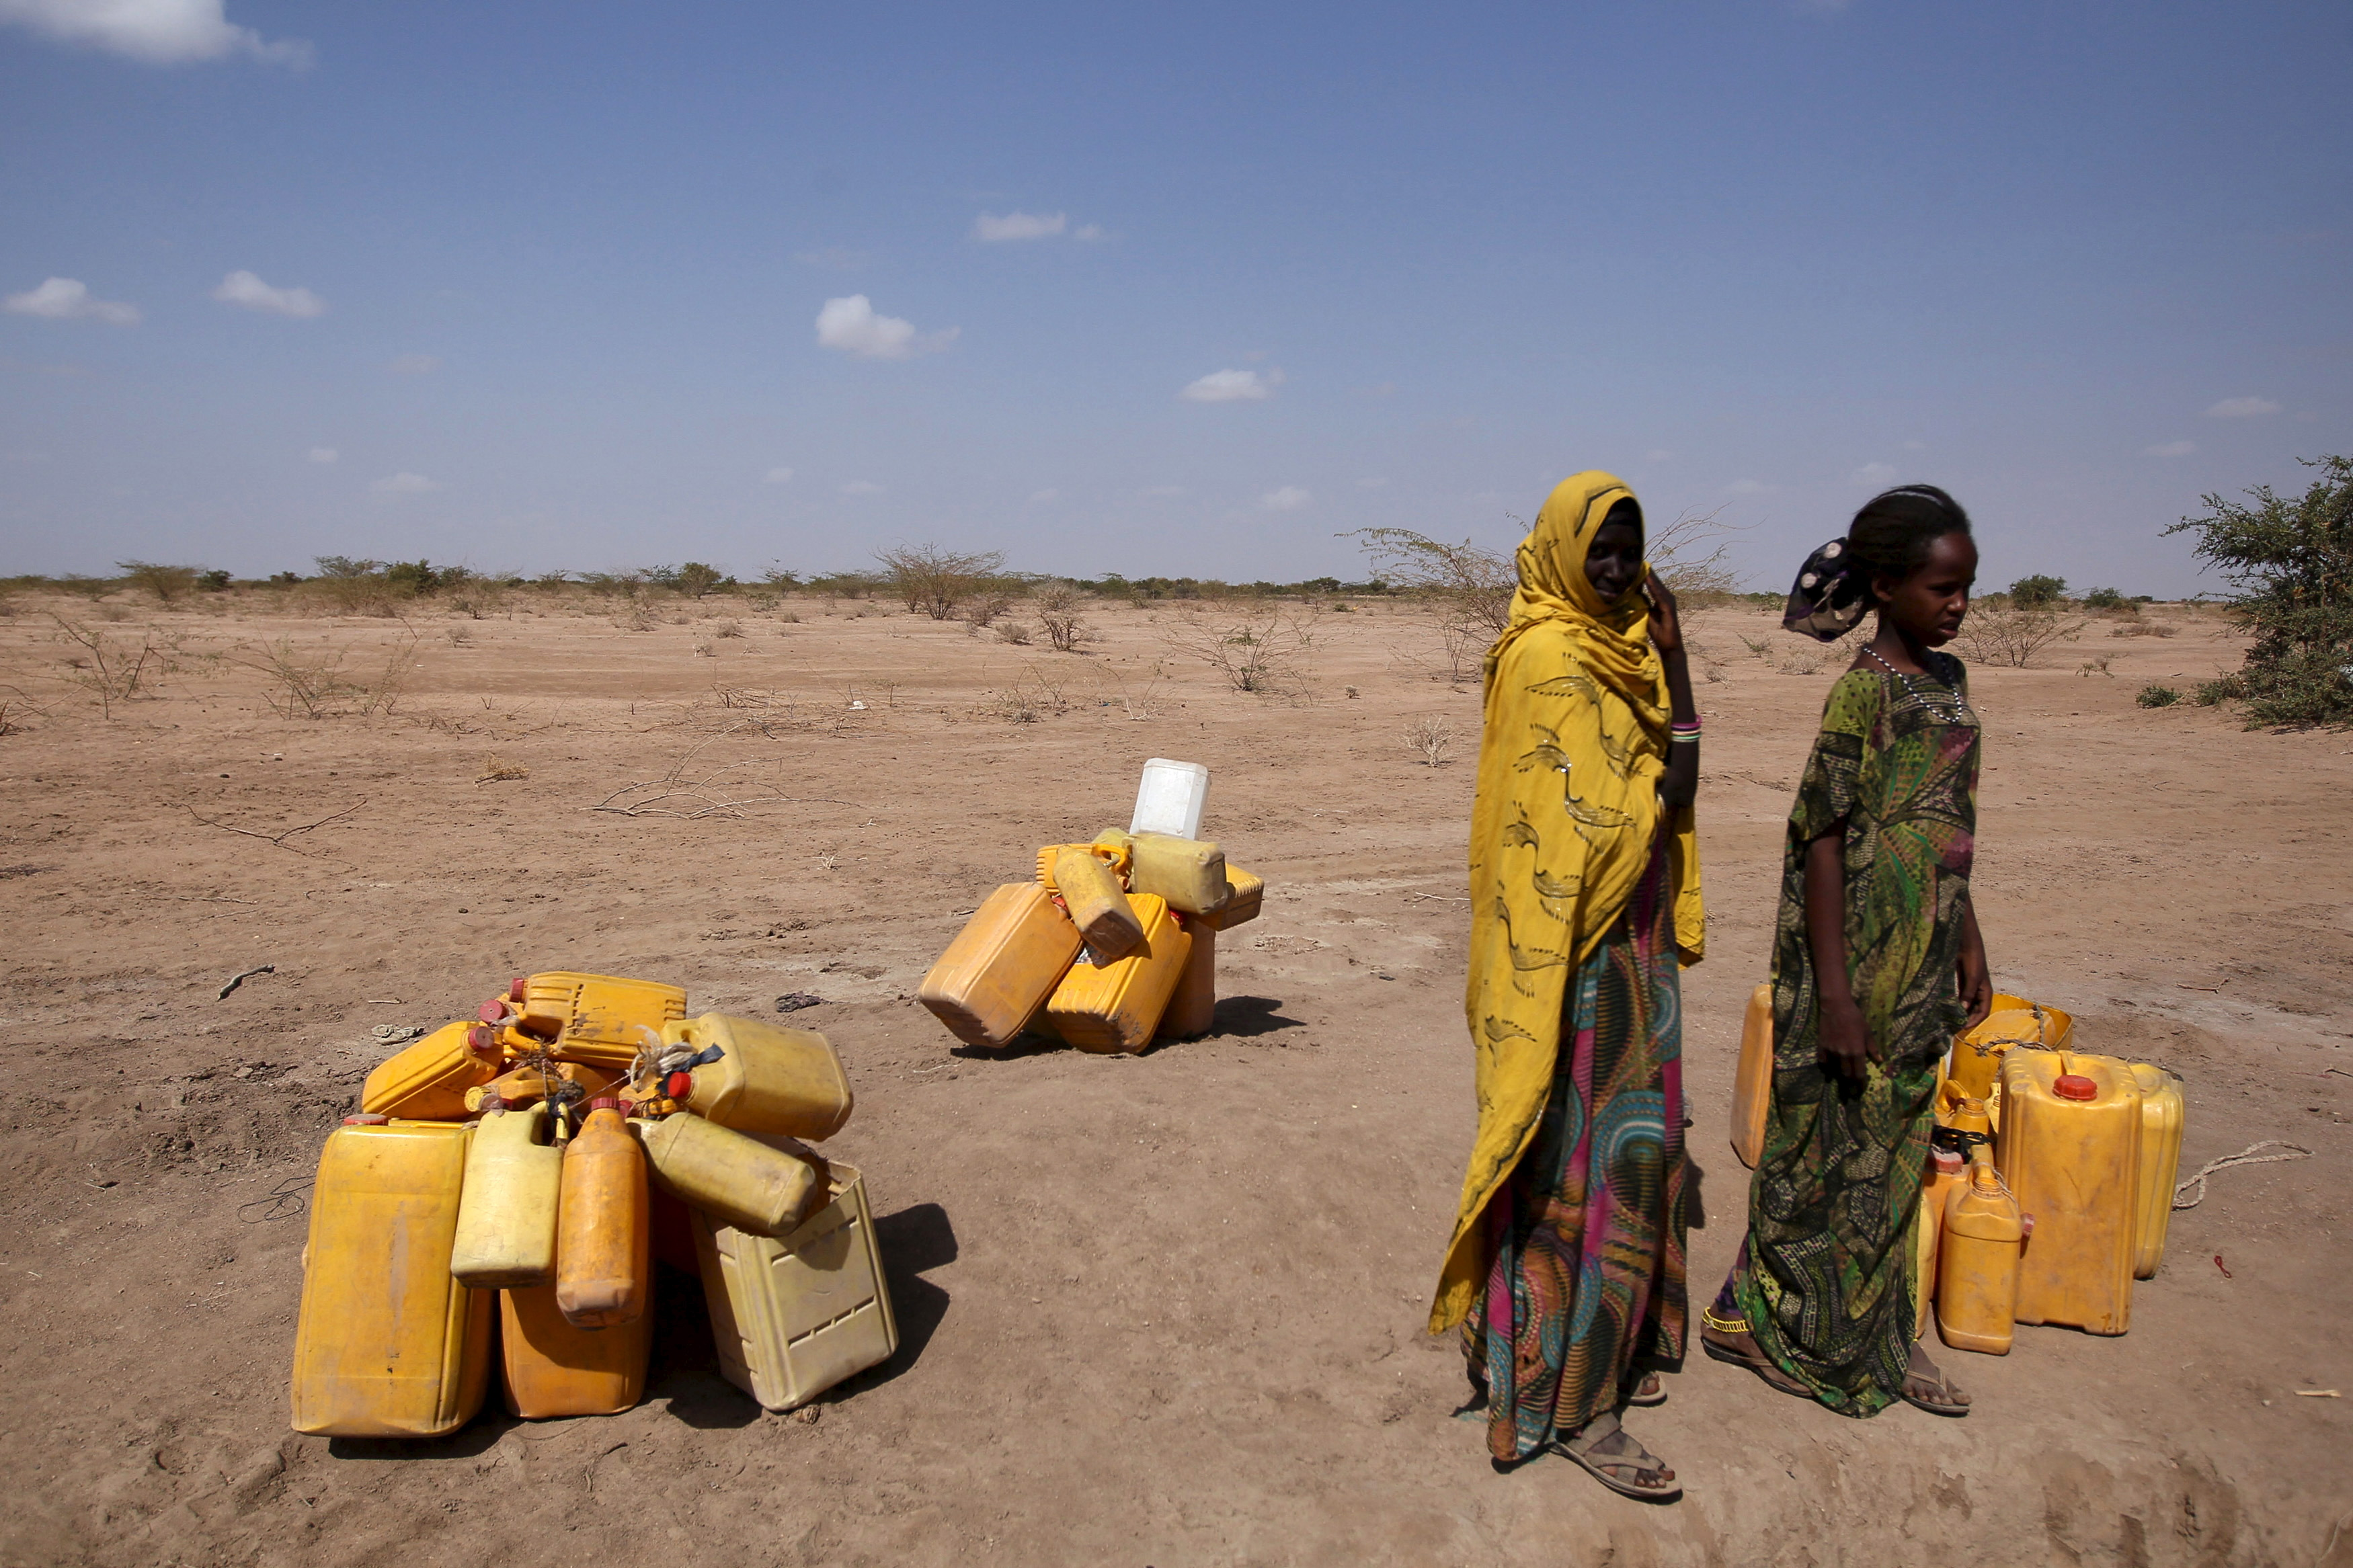 Regional partnership, governments to address water crisis in Laikipia